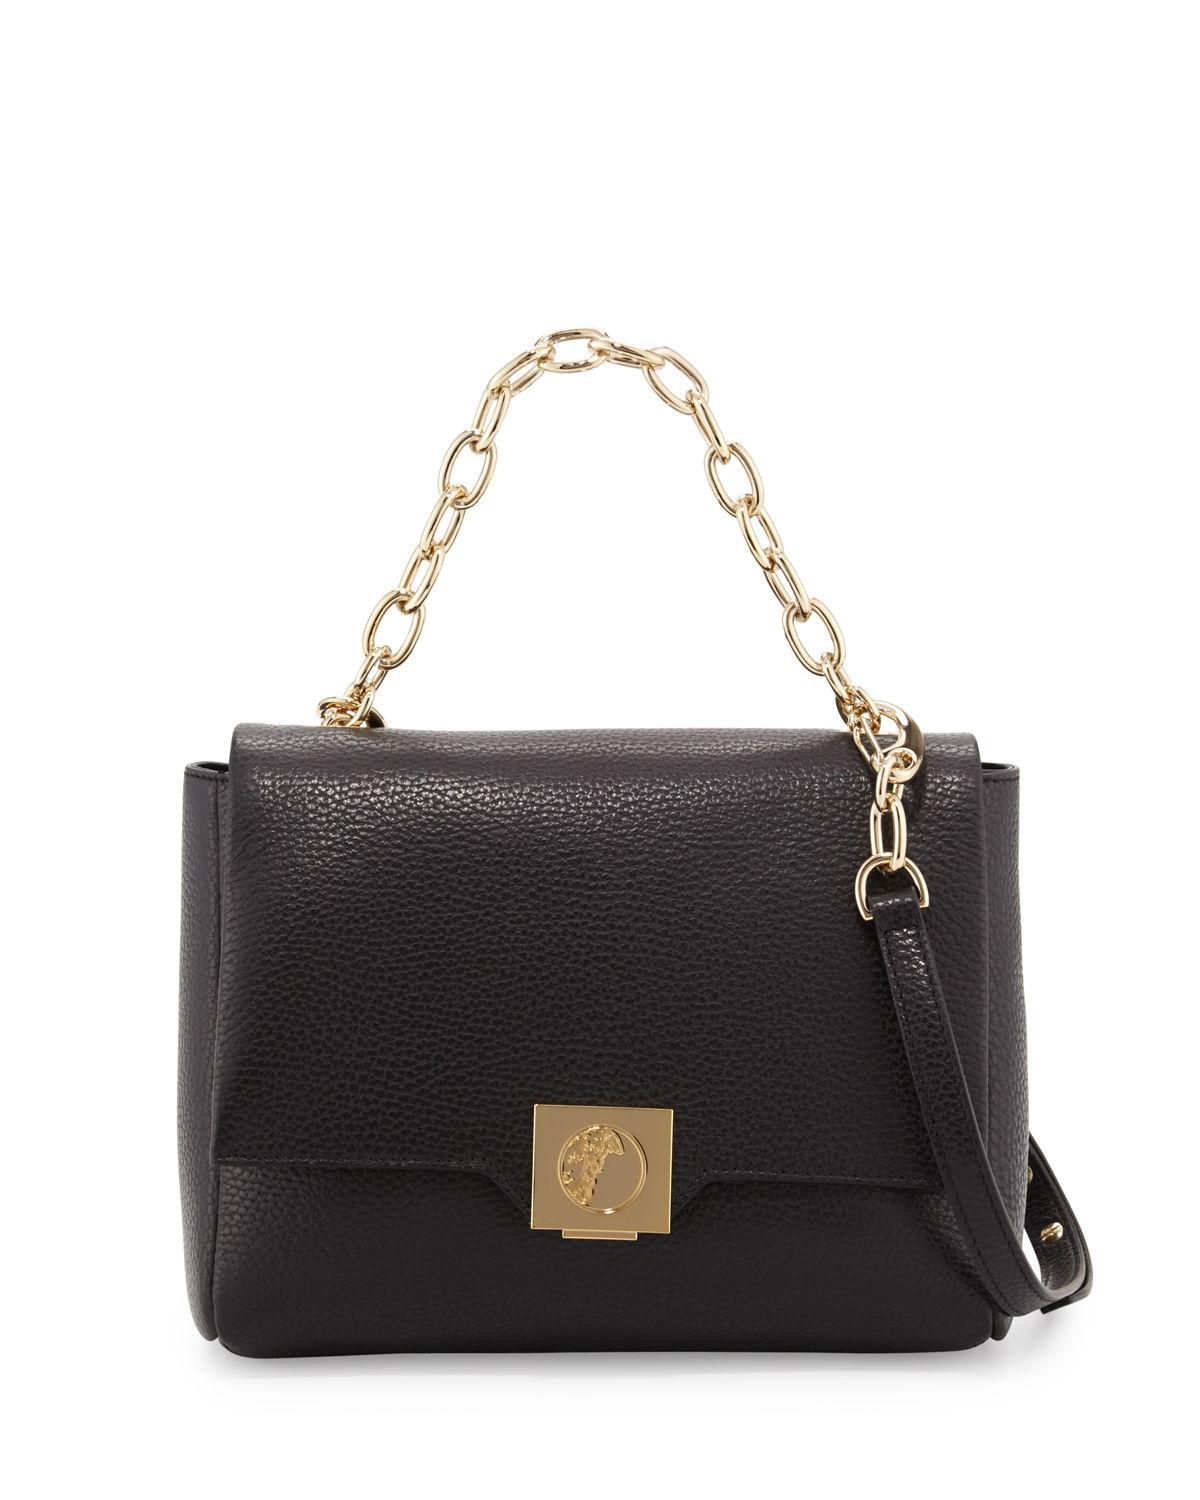 0a3f3af76e Lyst - Versace Leather Fold-over Crossbody Bag in Black